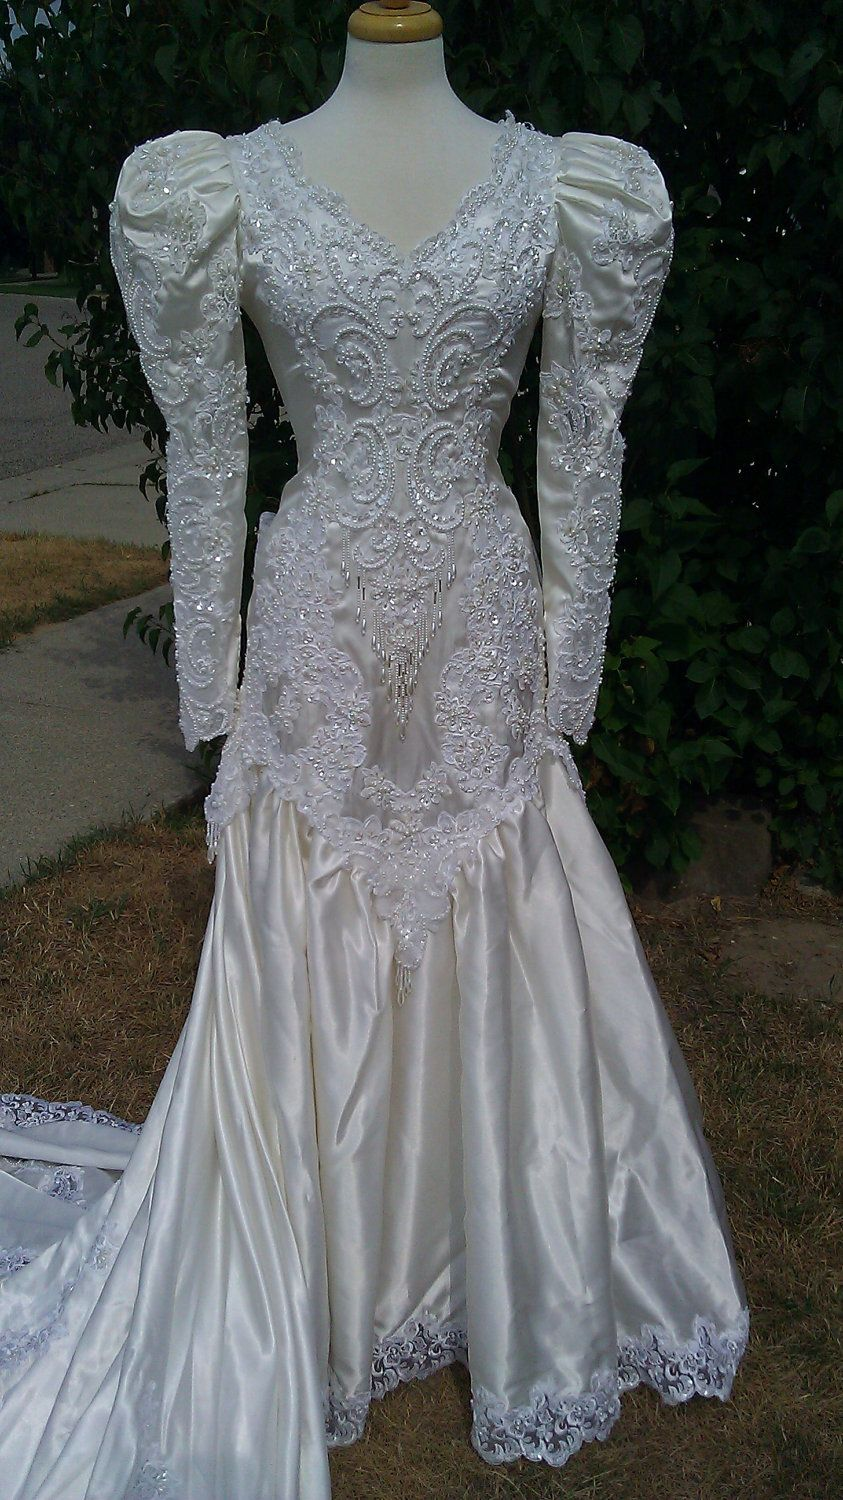 Sale 80s wedding dress white satin with 5 foot train for Vintage wedding dresses sale